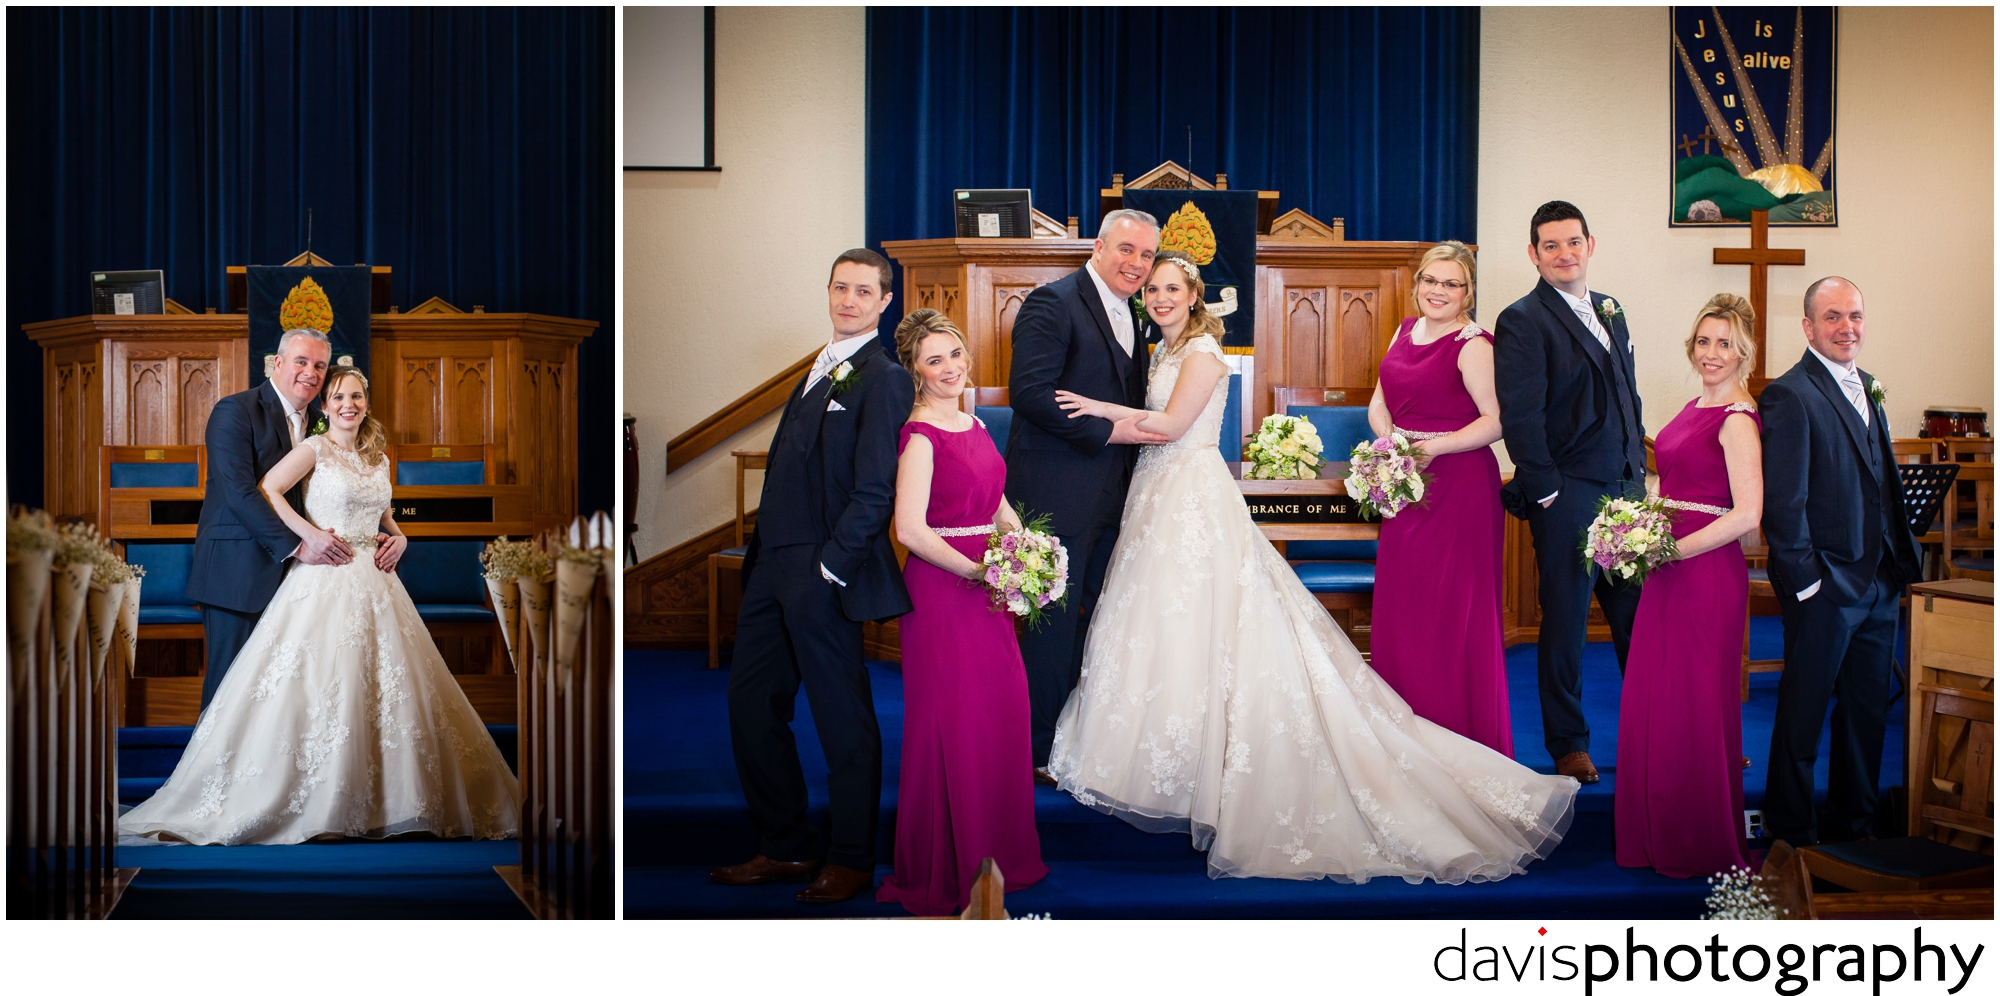 bridal party photographed at church alter